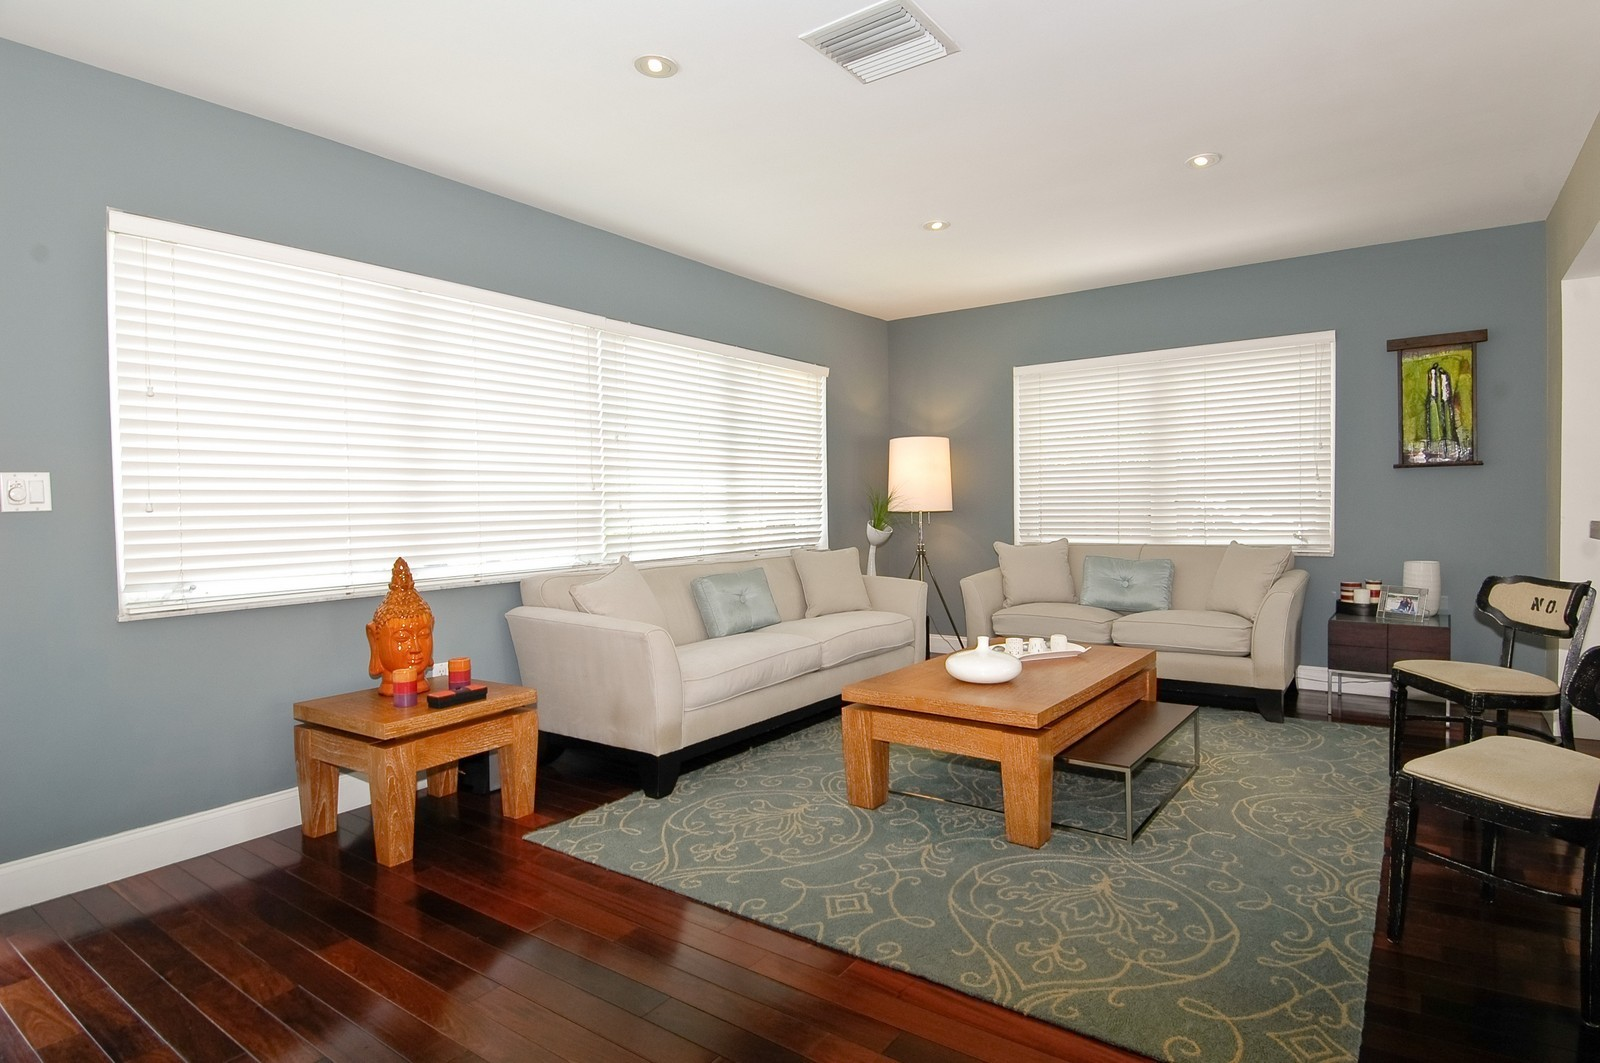 Real Estate Photography - 1500 Cleveland Rd, Miami Beach, FL, 33141 - Living Room